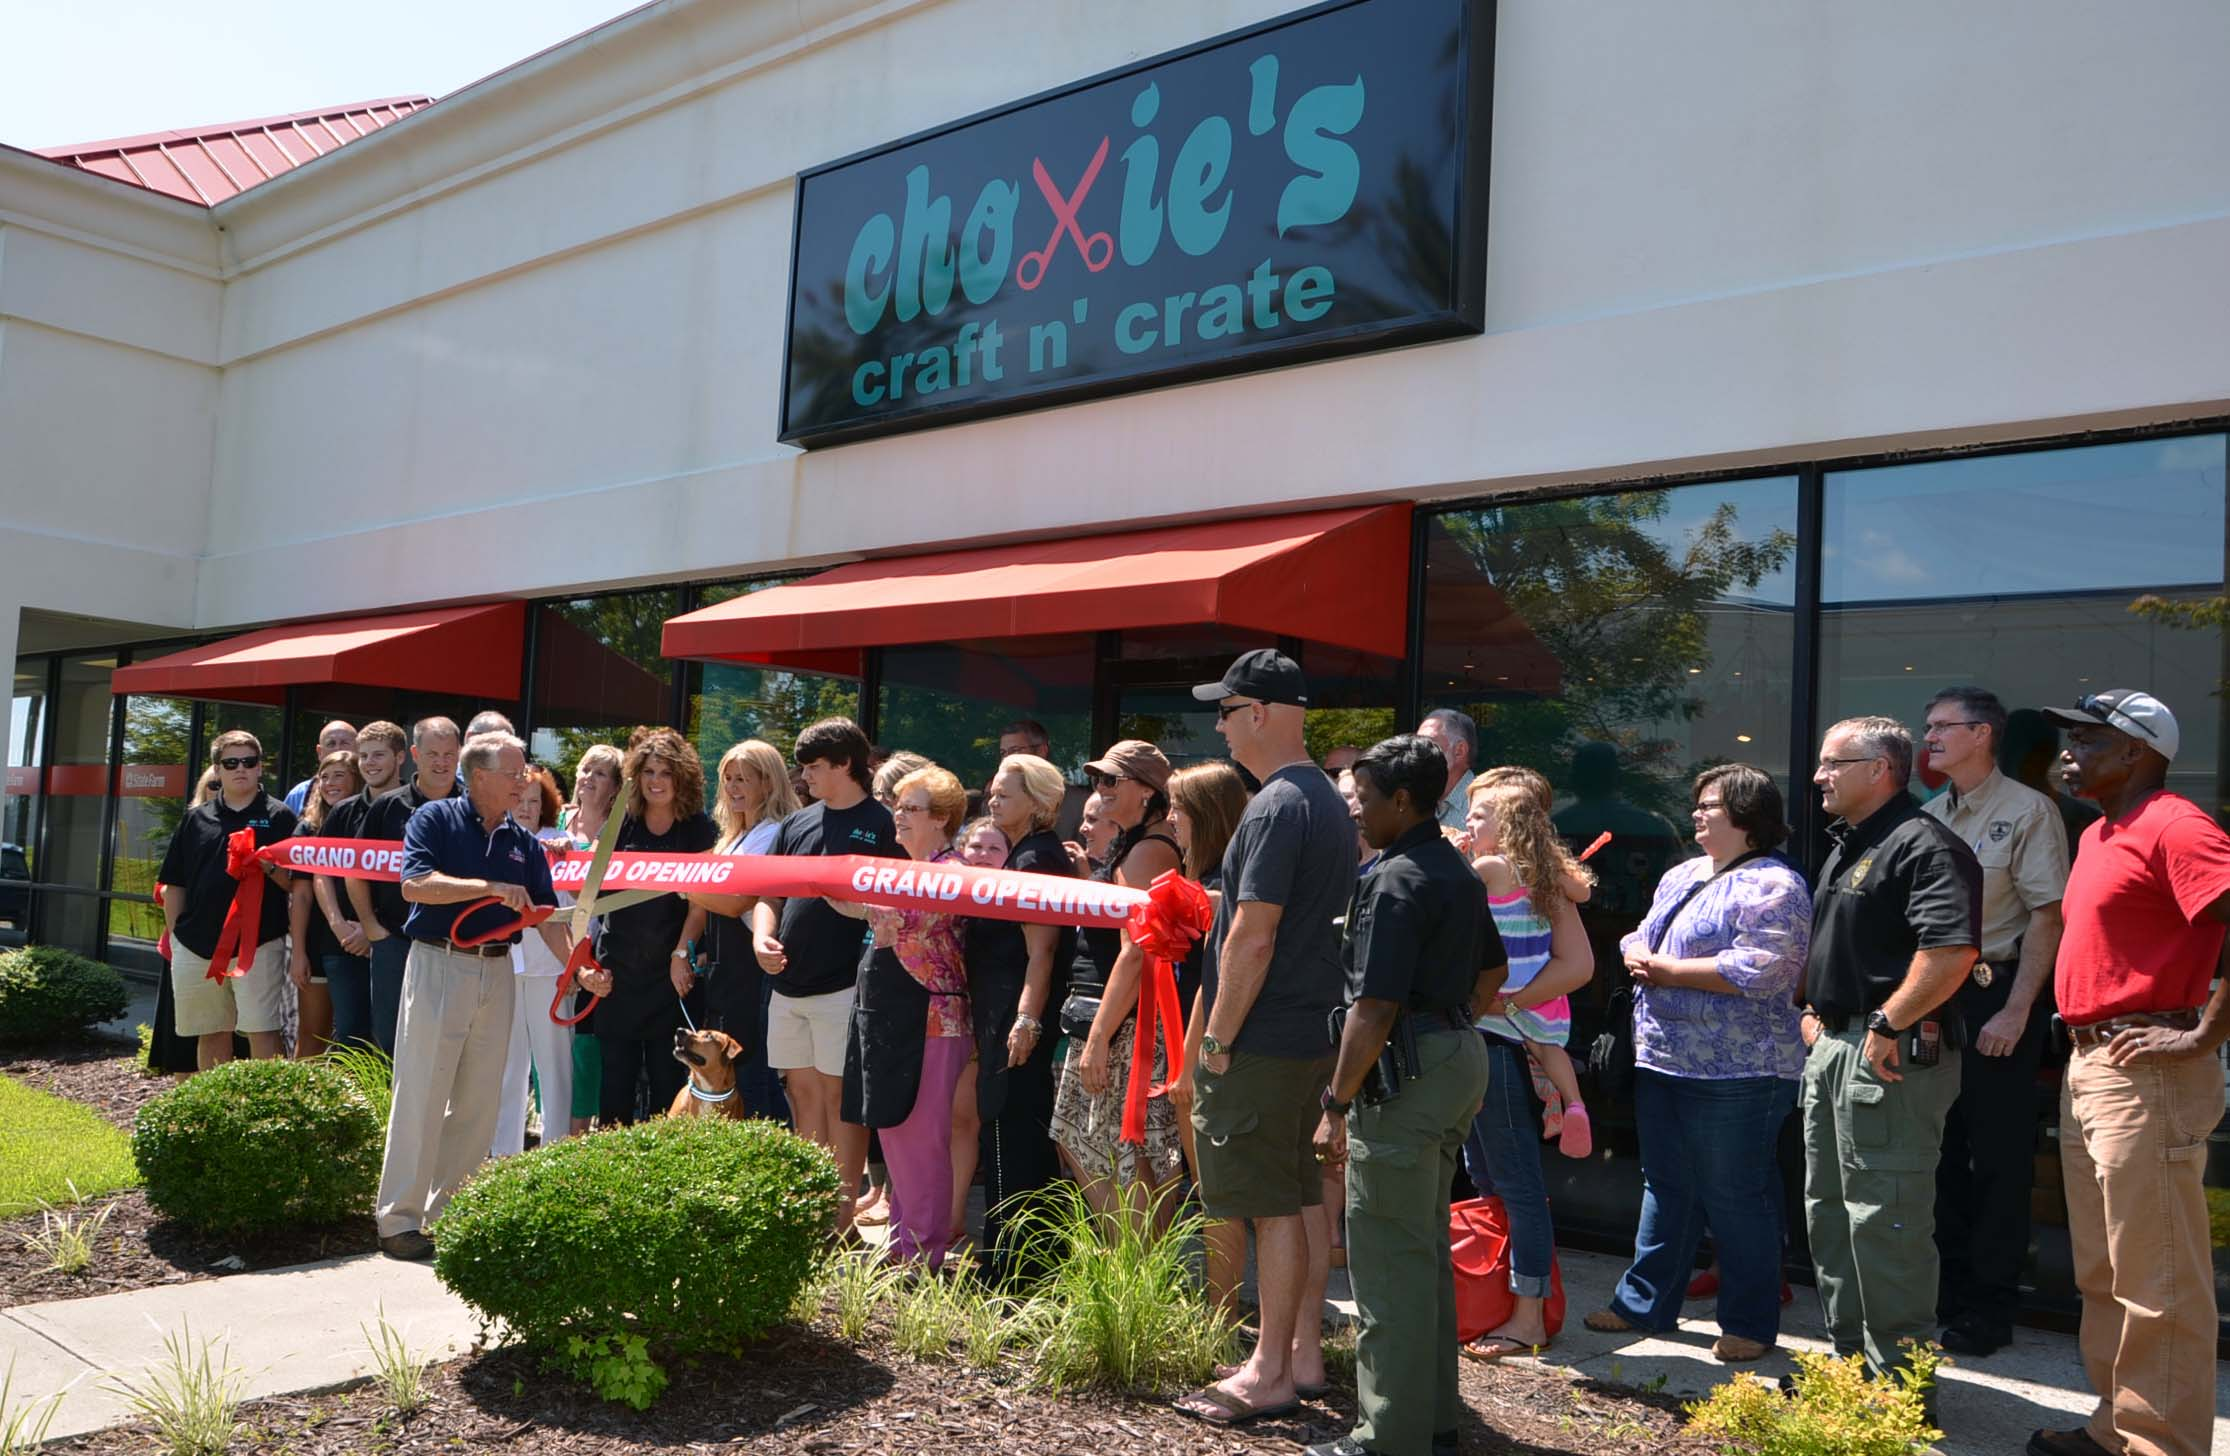 Ribbon Cutting for Choxie's Craft N' Crate 1